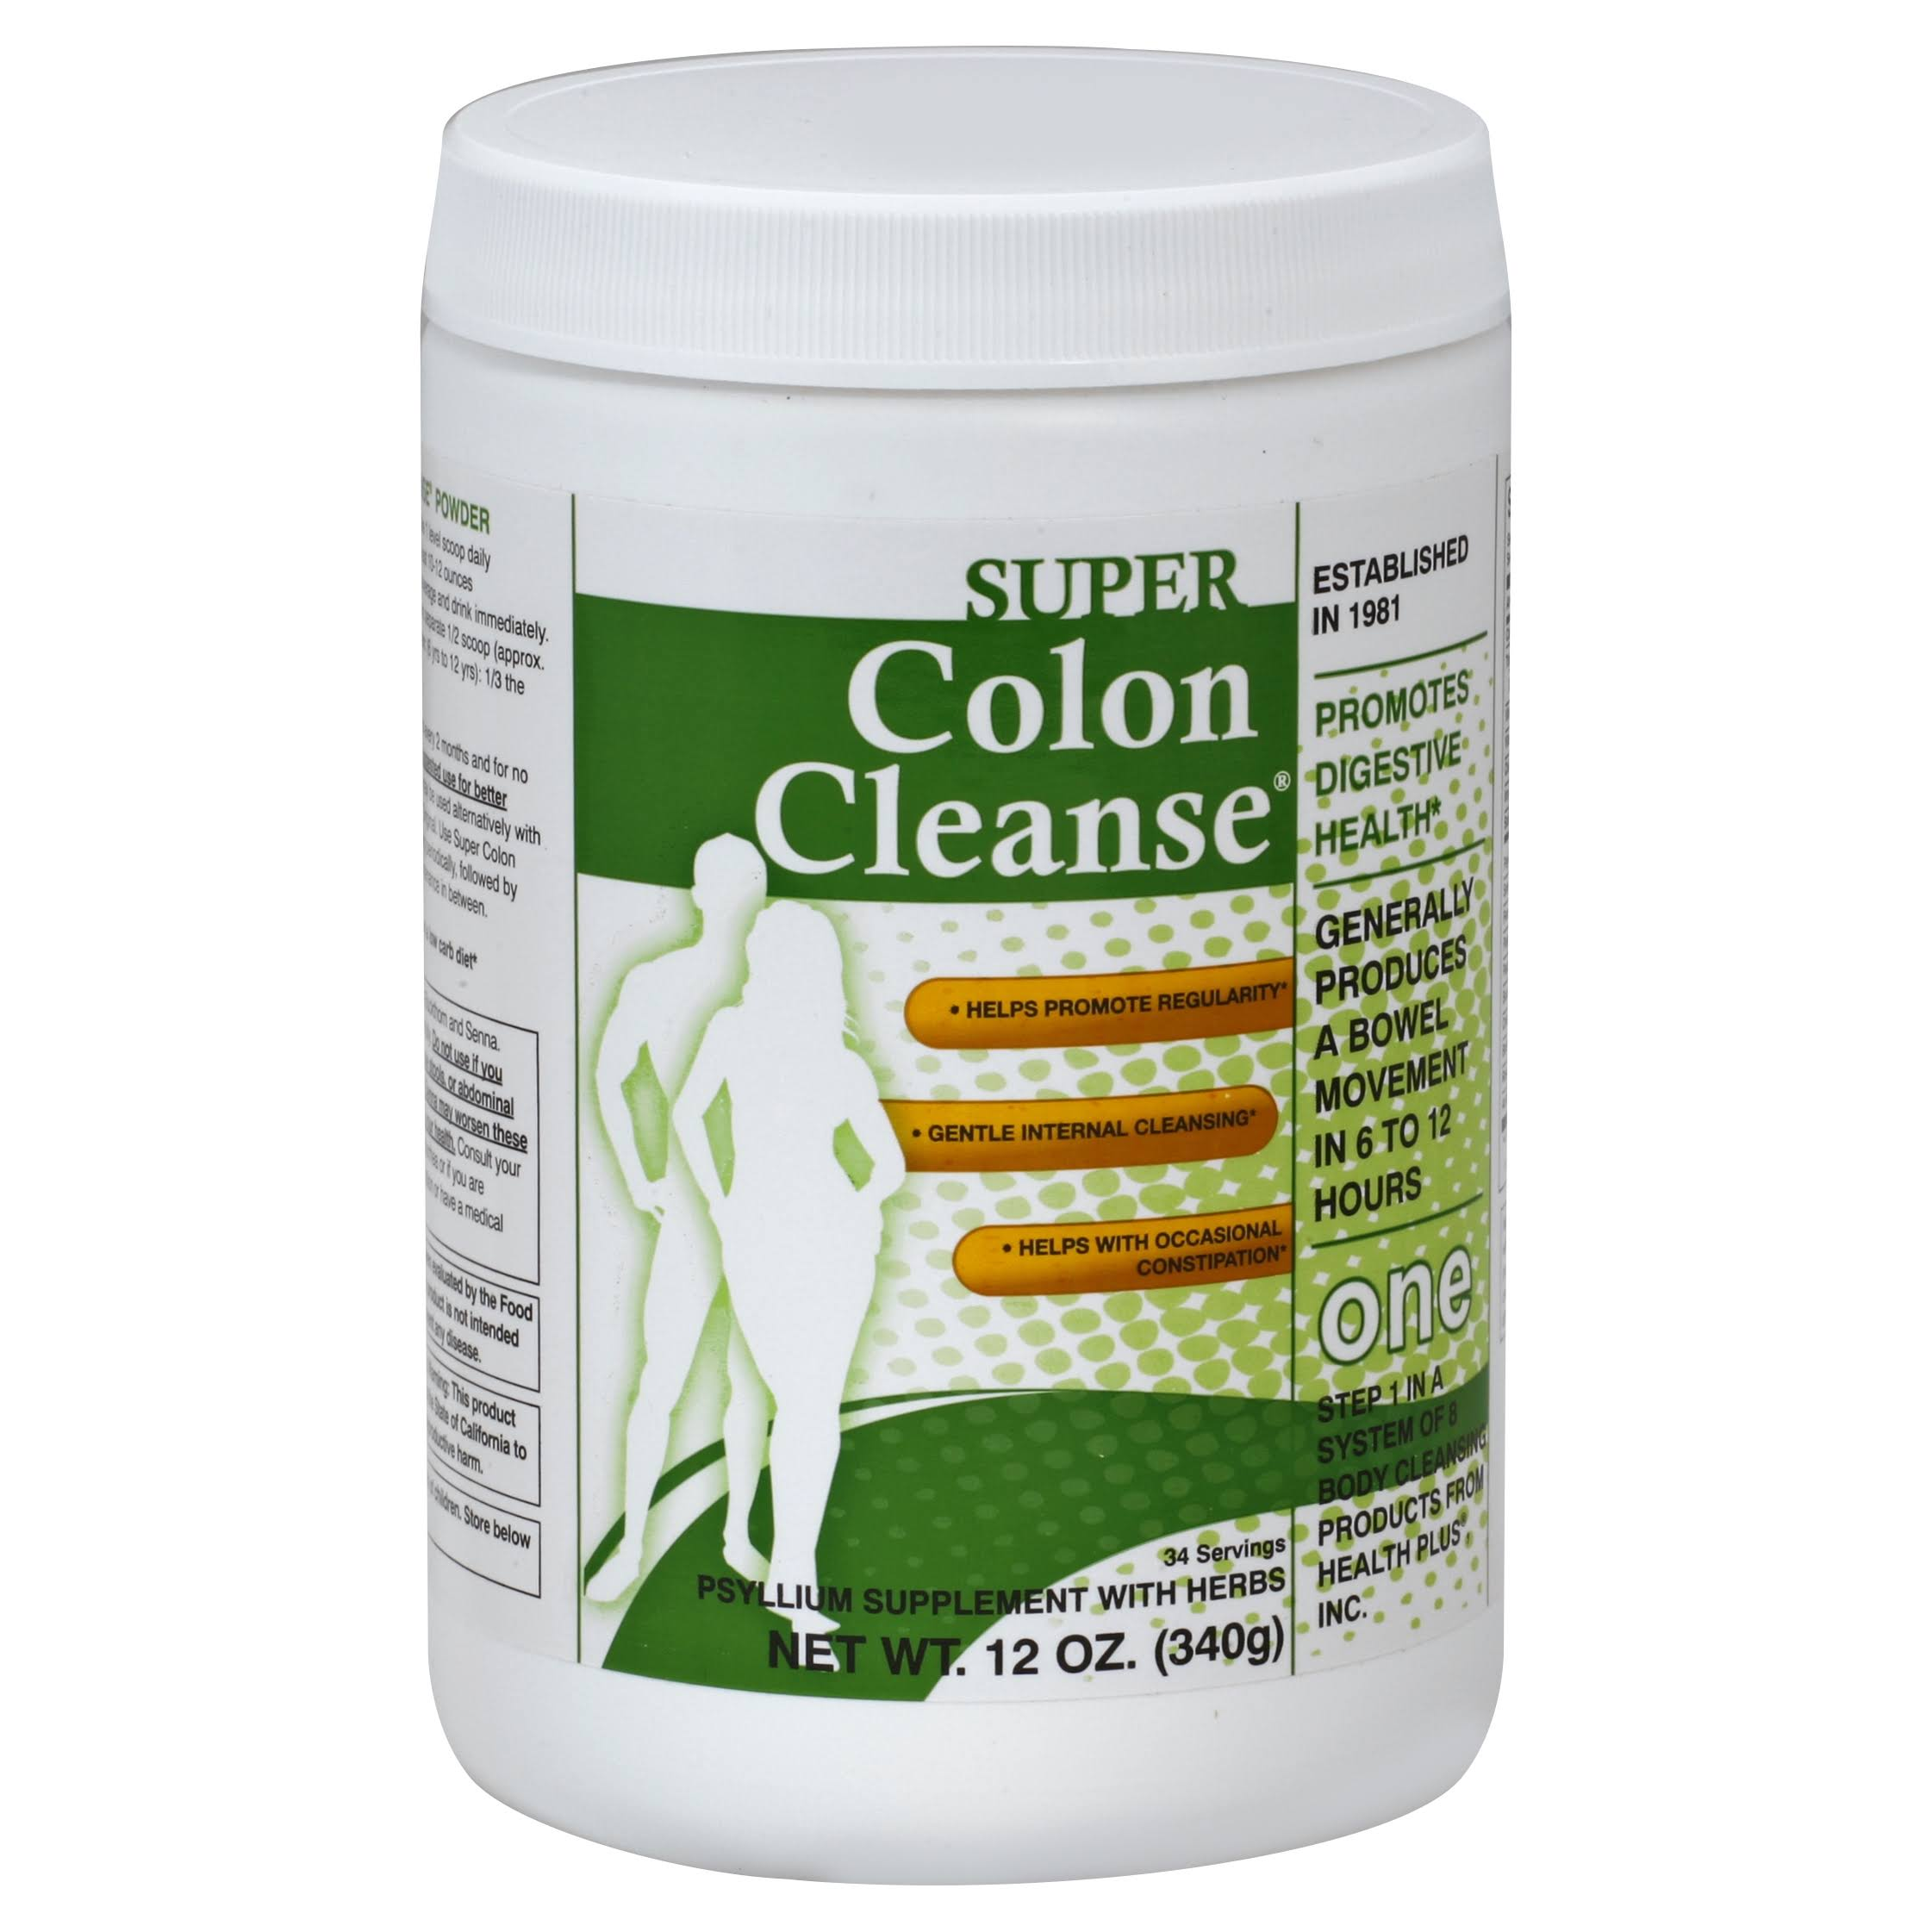 Health Plus Super Colon Cleanse Powder - 12oz